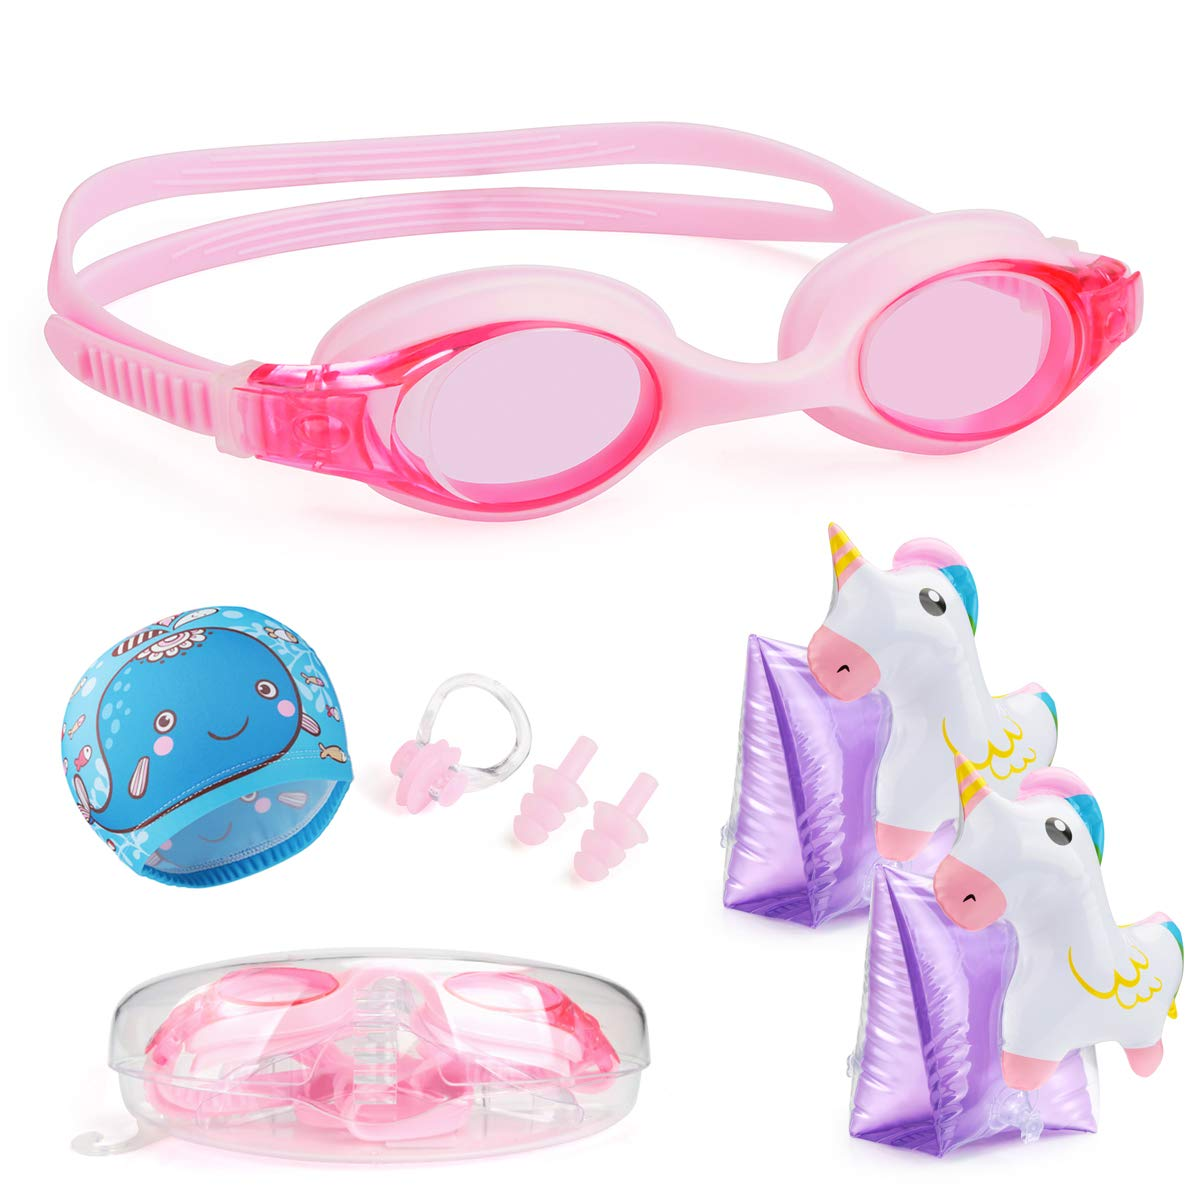 Ear Plugs Case Clear Vision Anti-Fog UV Protection Nose Clip Keegud Kids Swim Goggles,6 in 1 Swimming Goggles for Kids Swim Cap Age 3-8 + Inflatable Swim Arm Bands